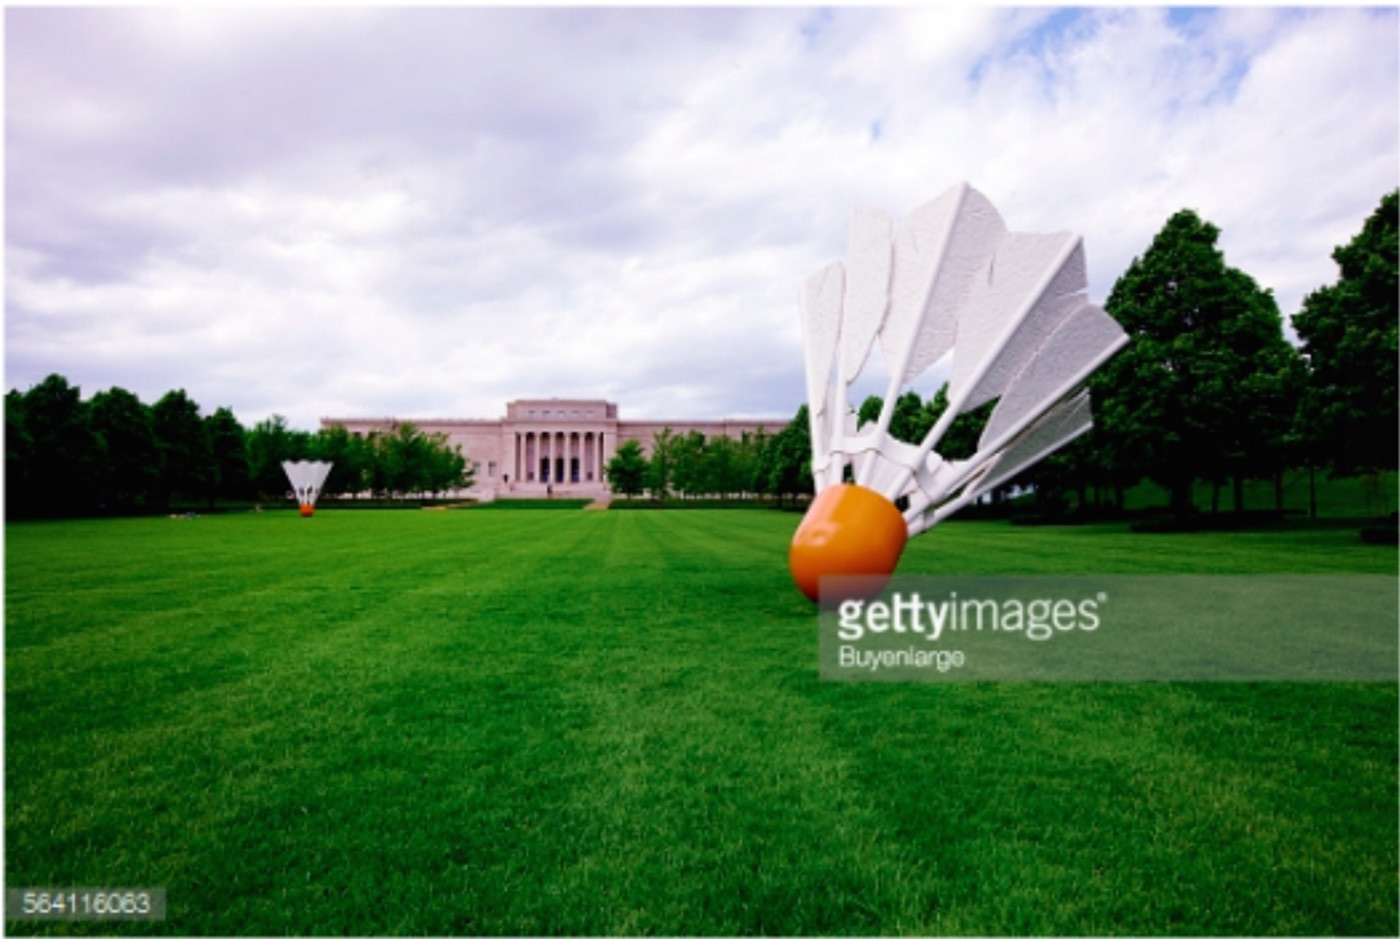 huge-shuttlecocks-getty-images-watermark